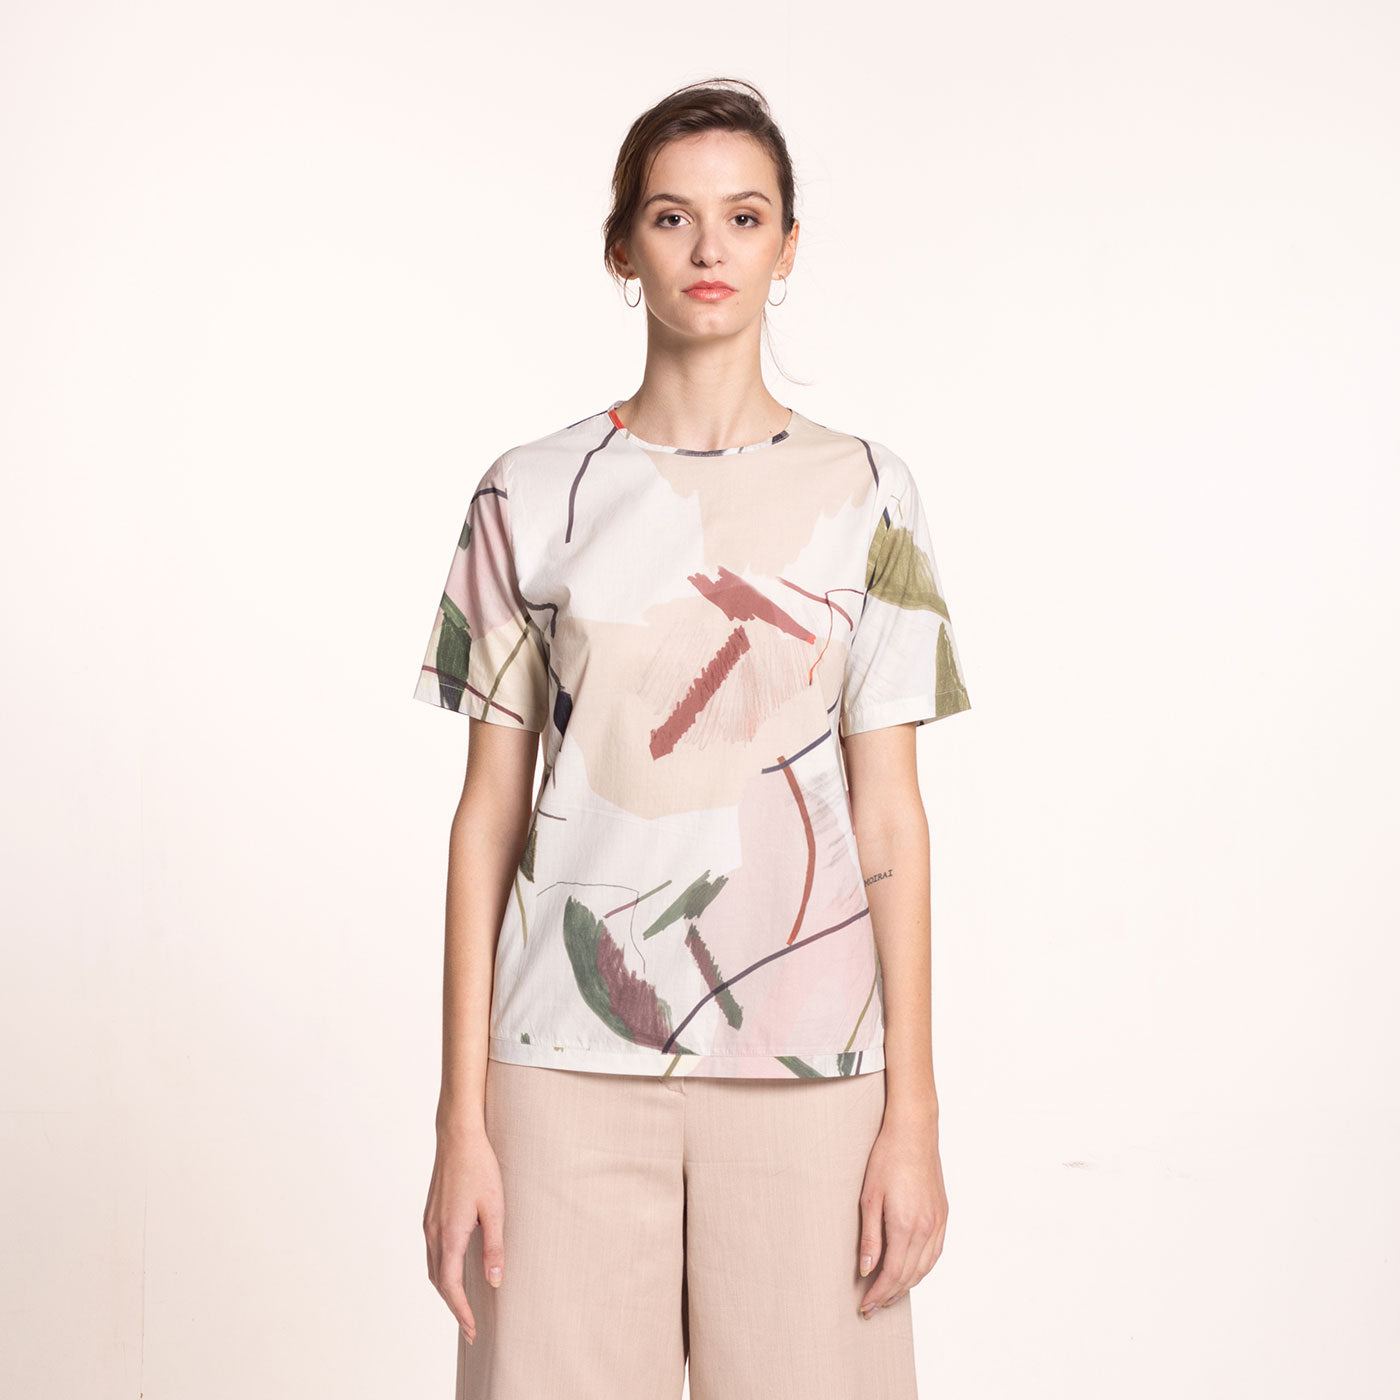 The model wears a sustainable, organic cotton, short sleeved blouse with round neckline and printed beige fabric with coloful shapes, front view.